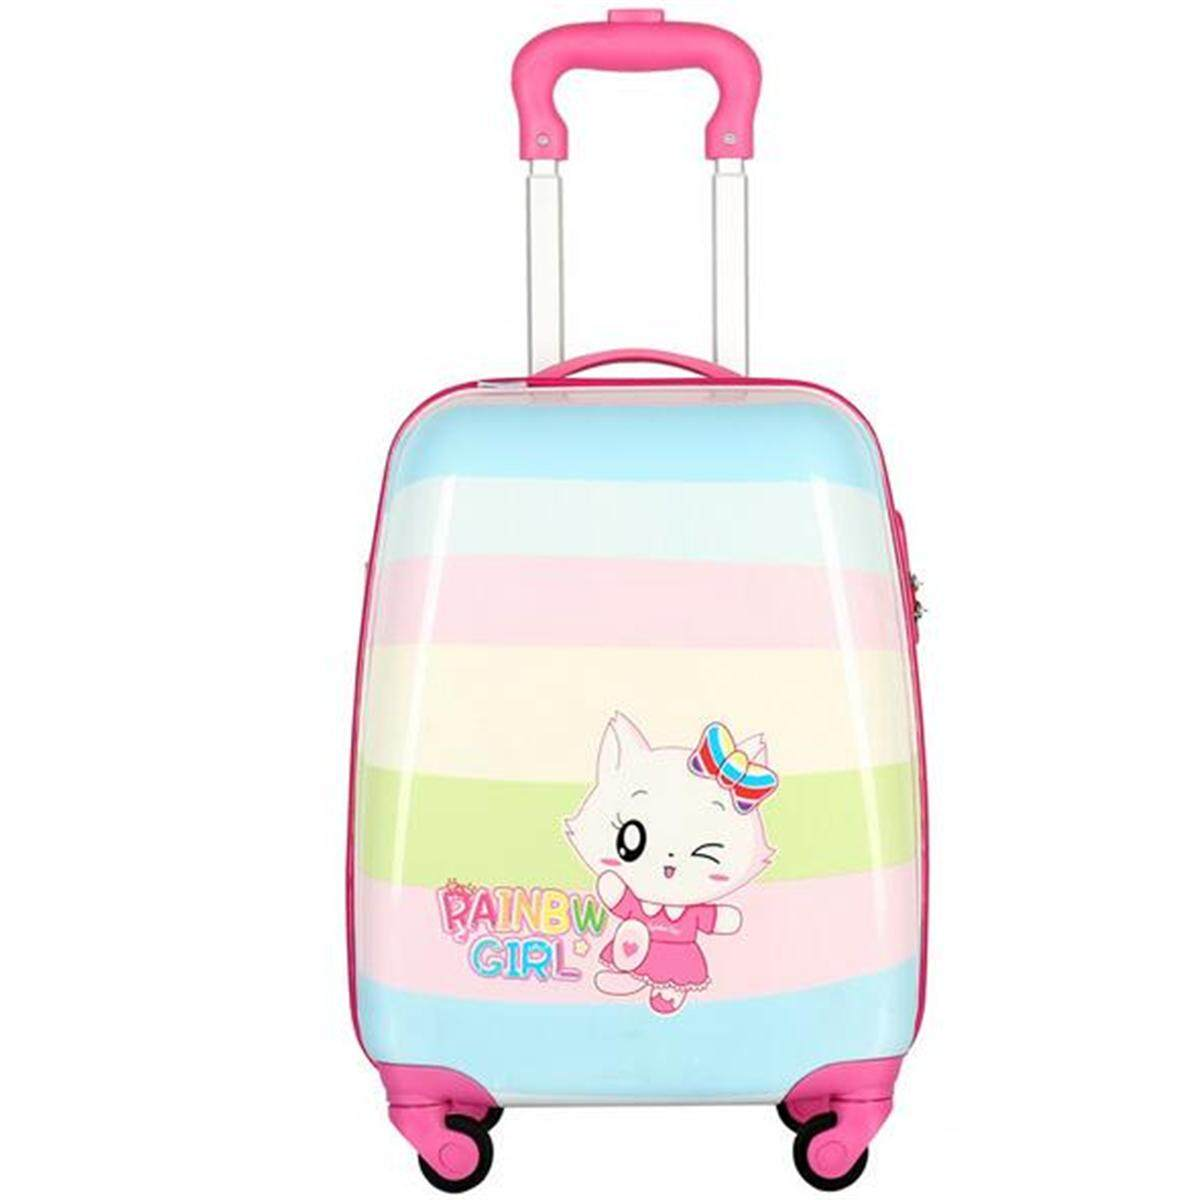 24282d74f China. Kids Children 18'' Luggage Suitcase Cat Travel Cabin Trolley  Aluminium Alloy Rod Luggage Suitcase